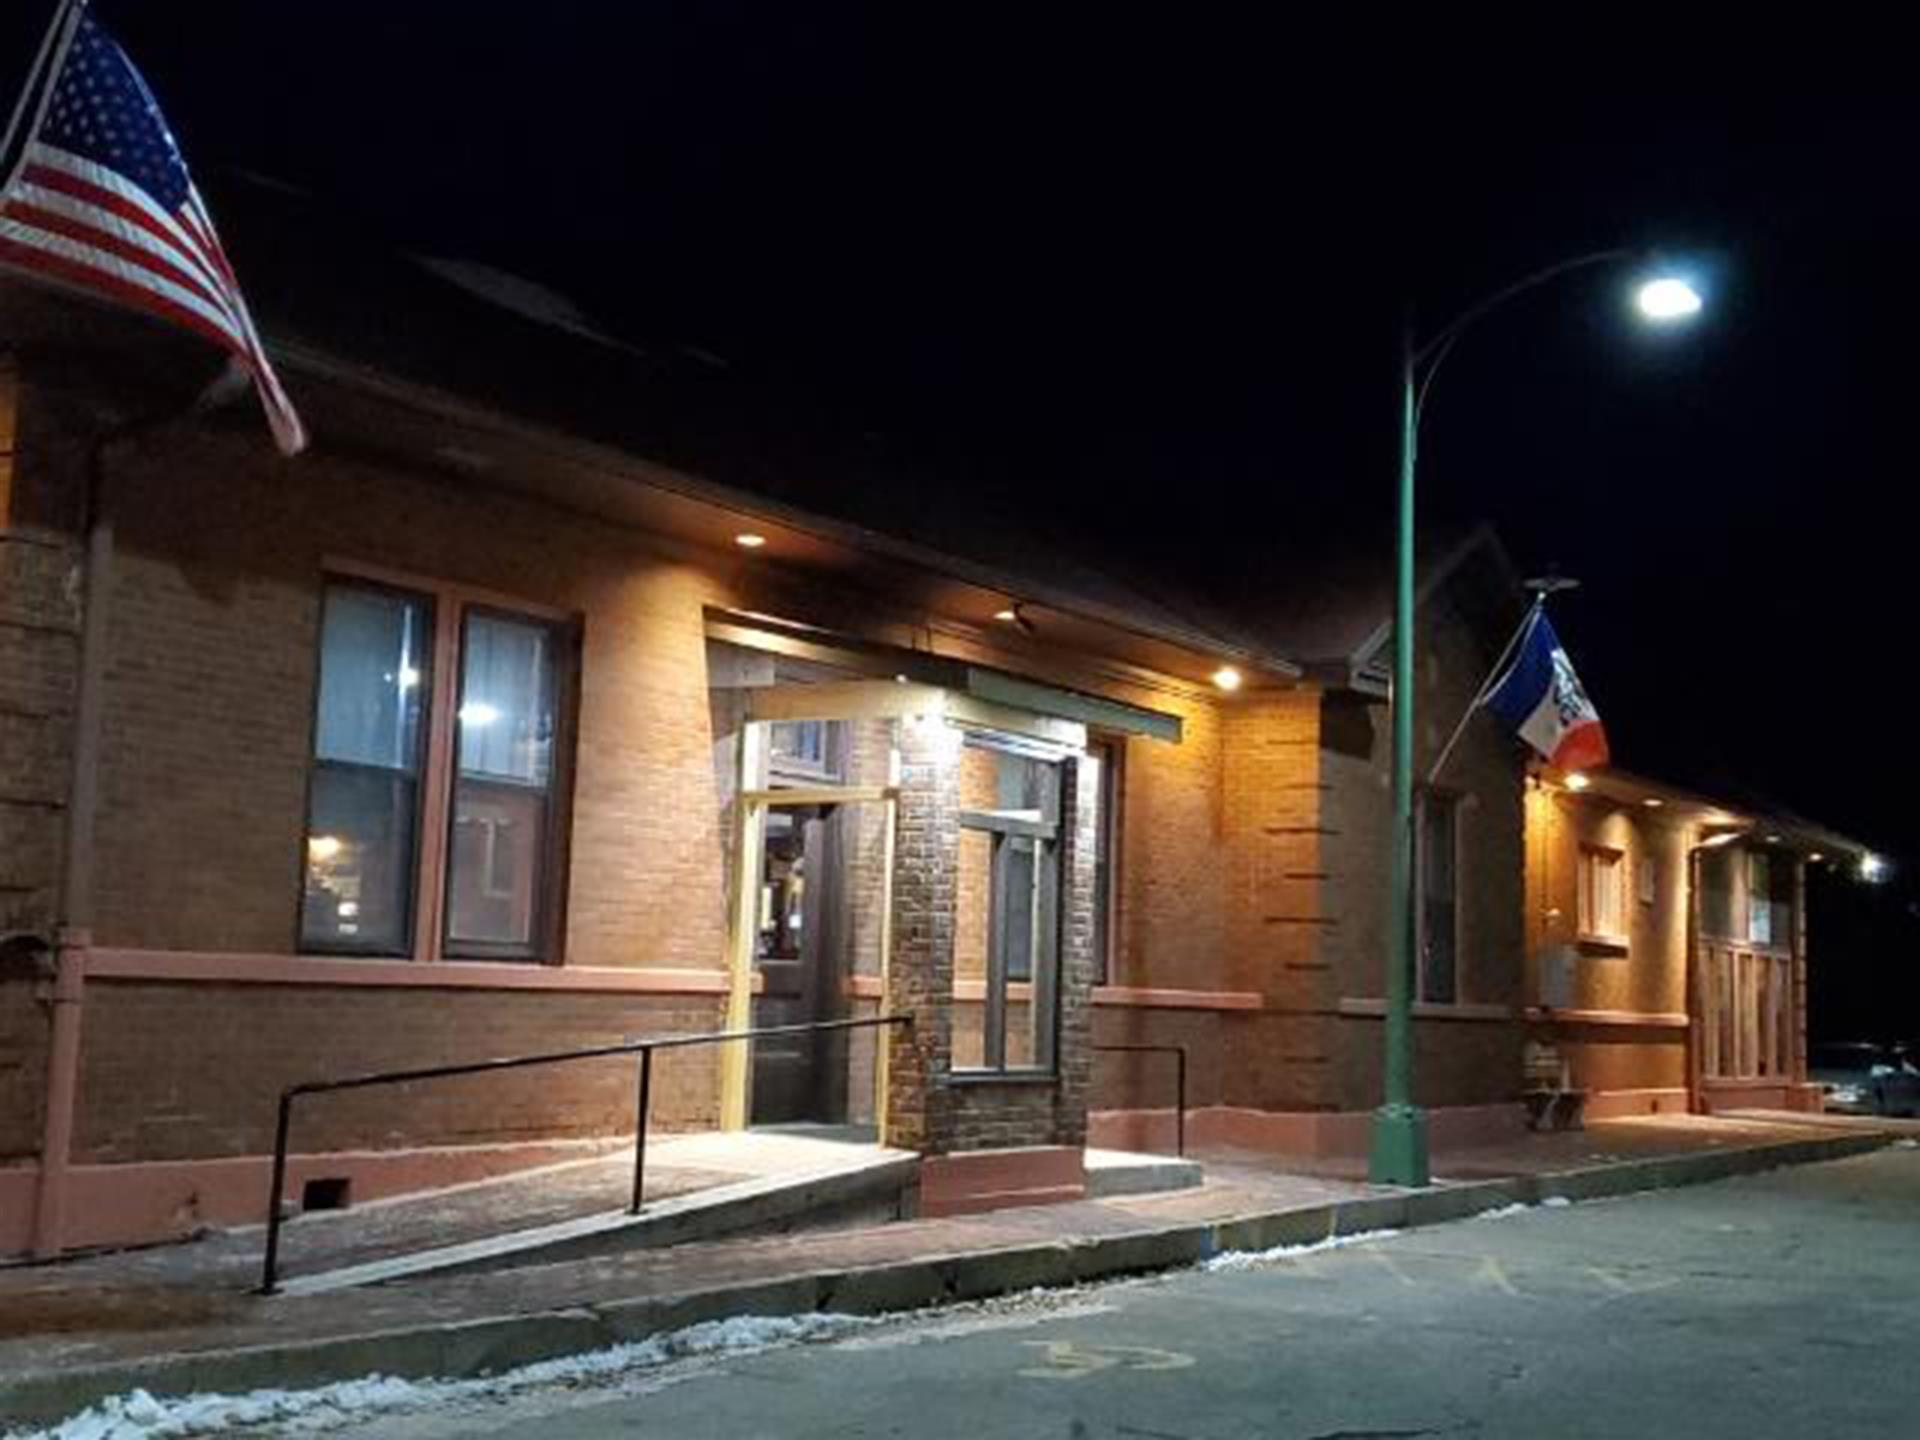 Outside of Depot at night